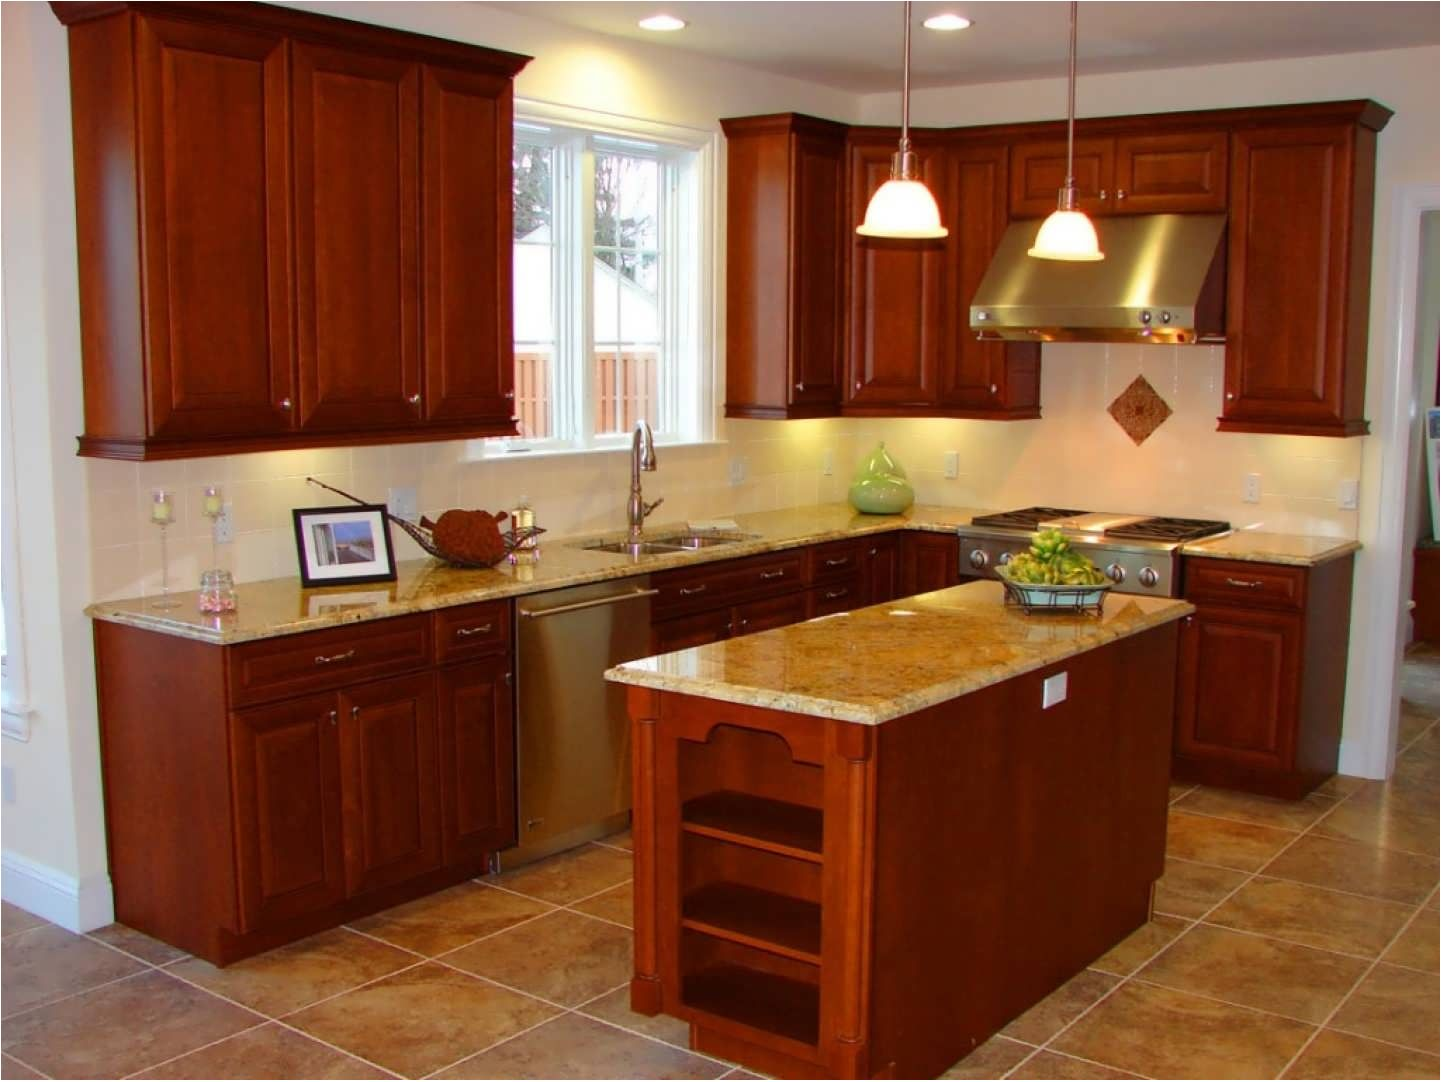 Deliver Gorgeous Aesthetics in Your Kitchen With Granite Worktop